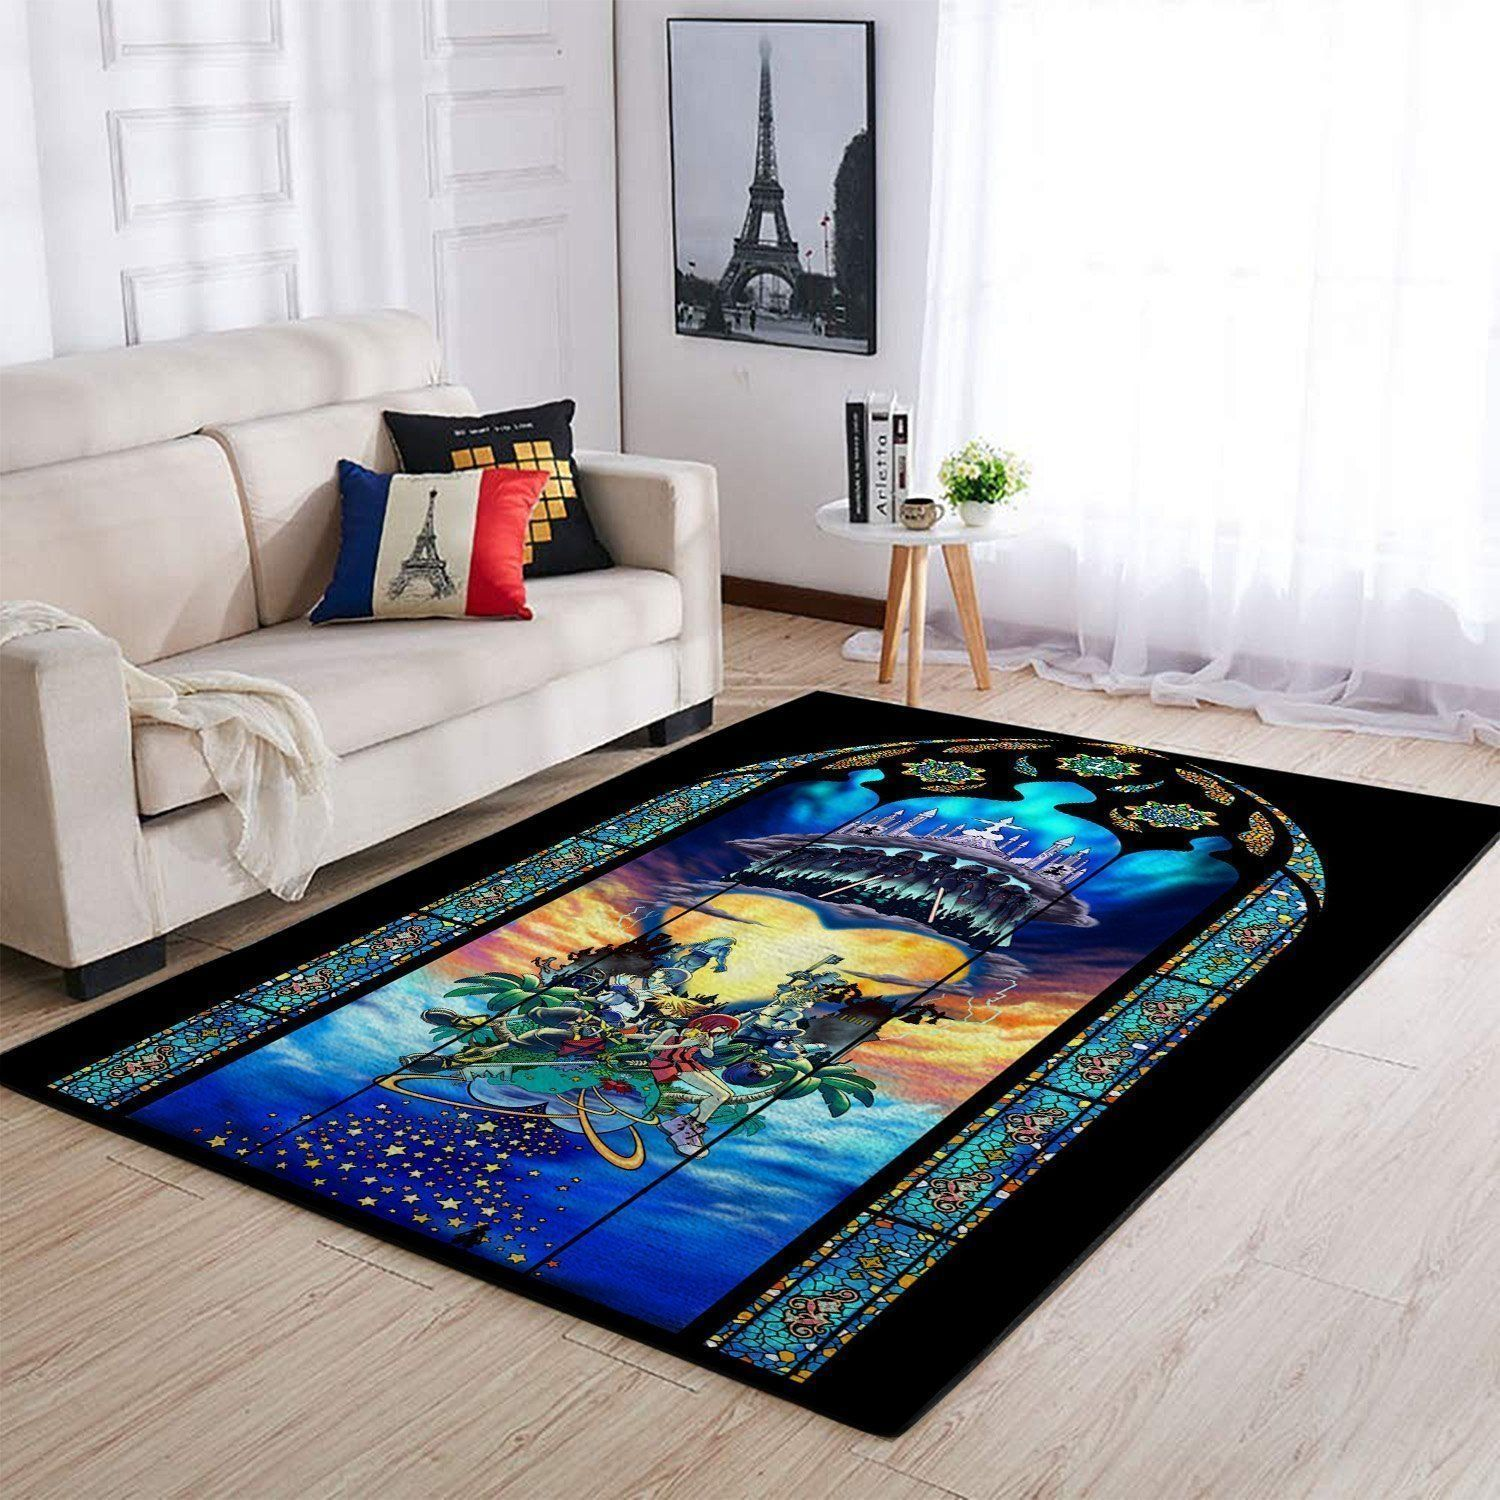 Kingdom Hearts Area Rug / Gaming Carpet, Gamer Living Room Rugs, Floor Decor 19091608